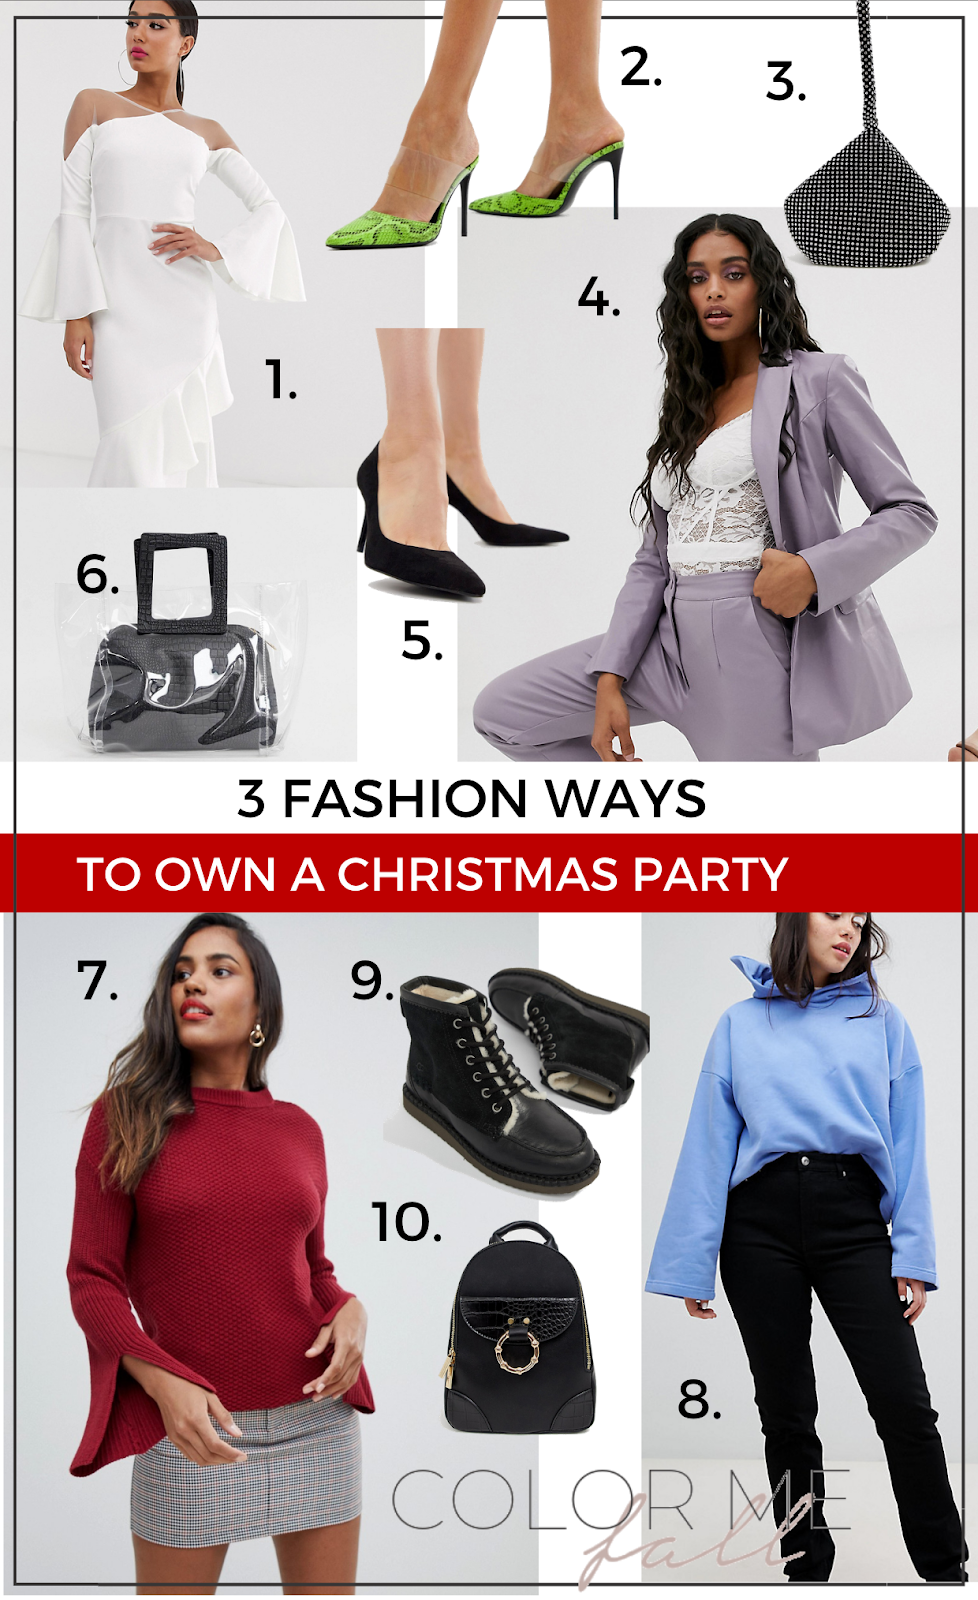 3 (And More) Fashion Ways To Own A Christmas Party